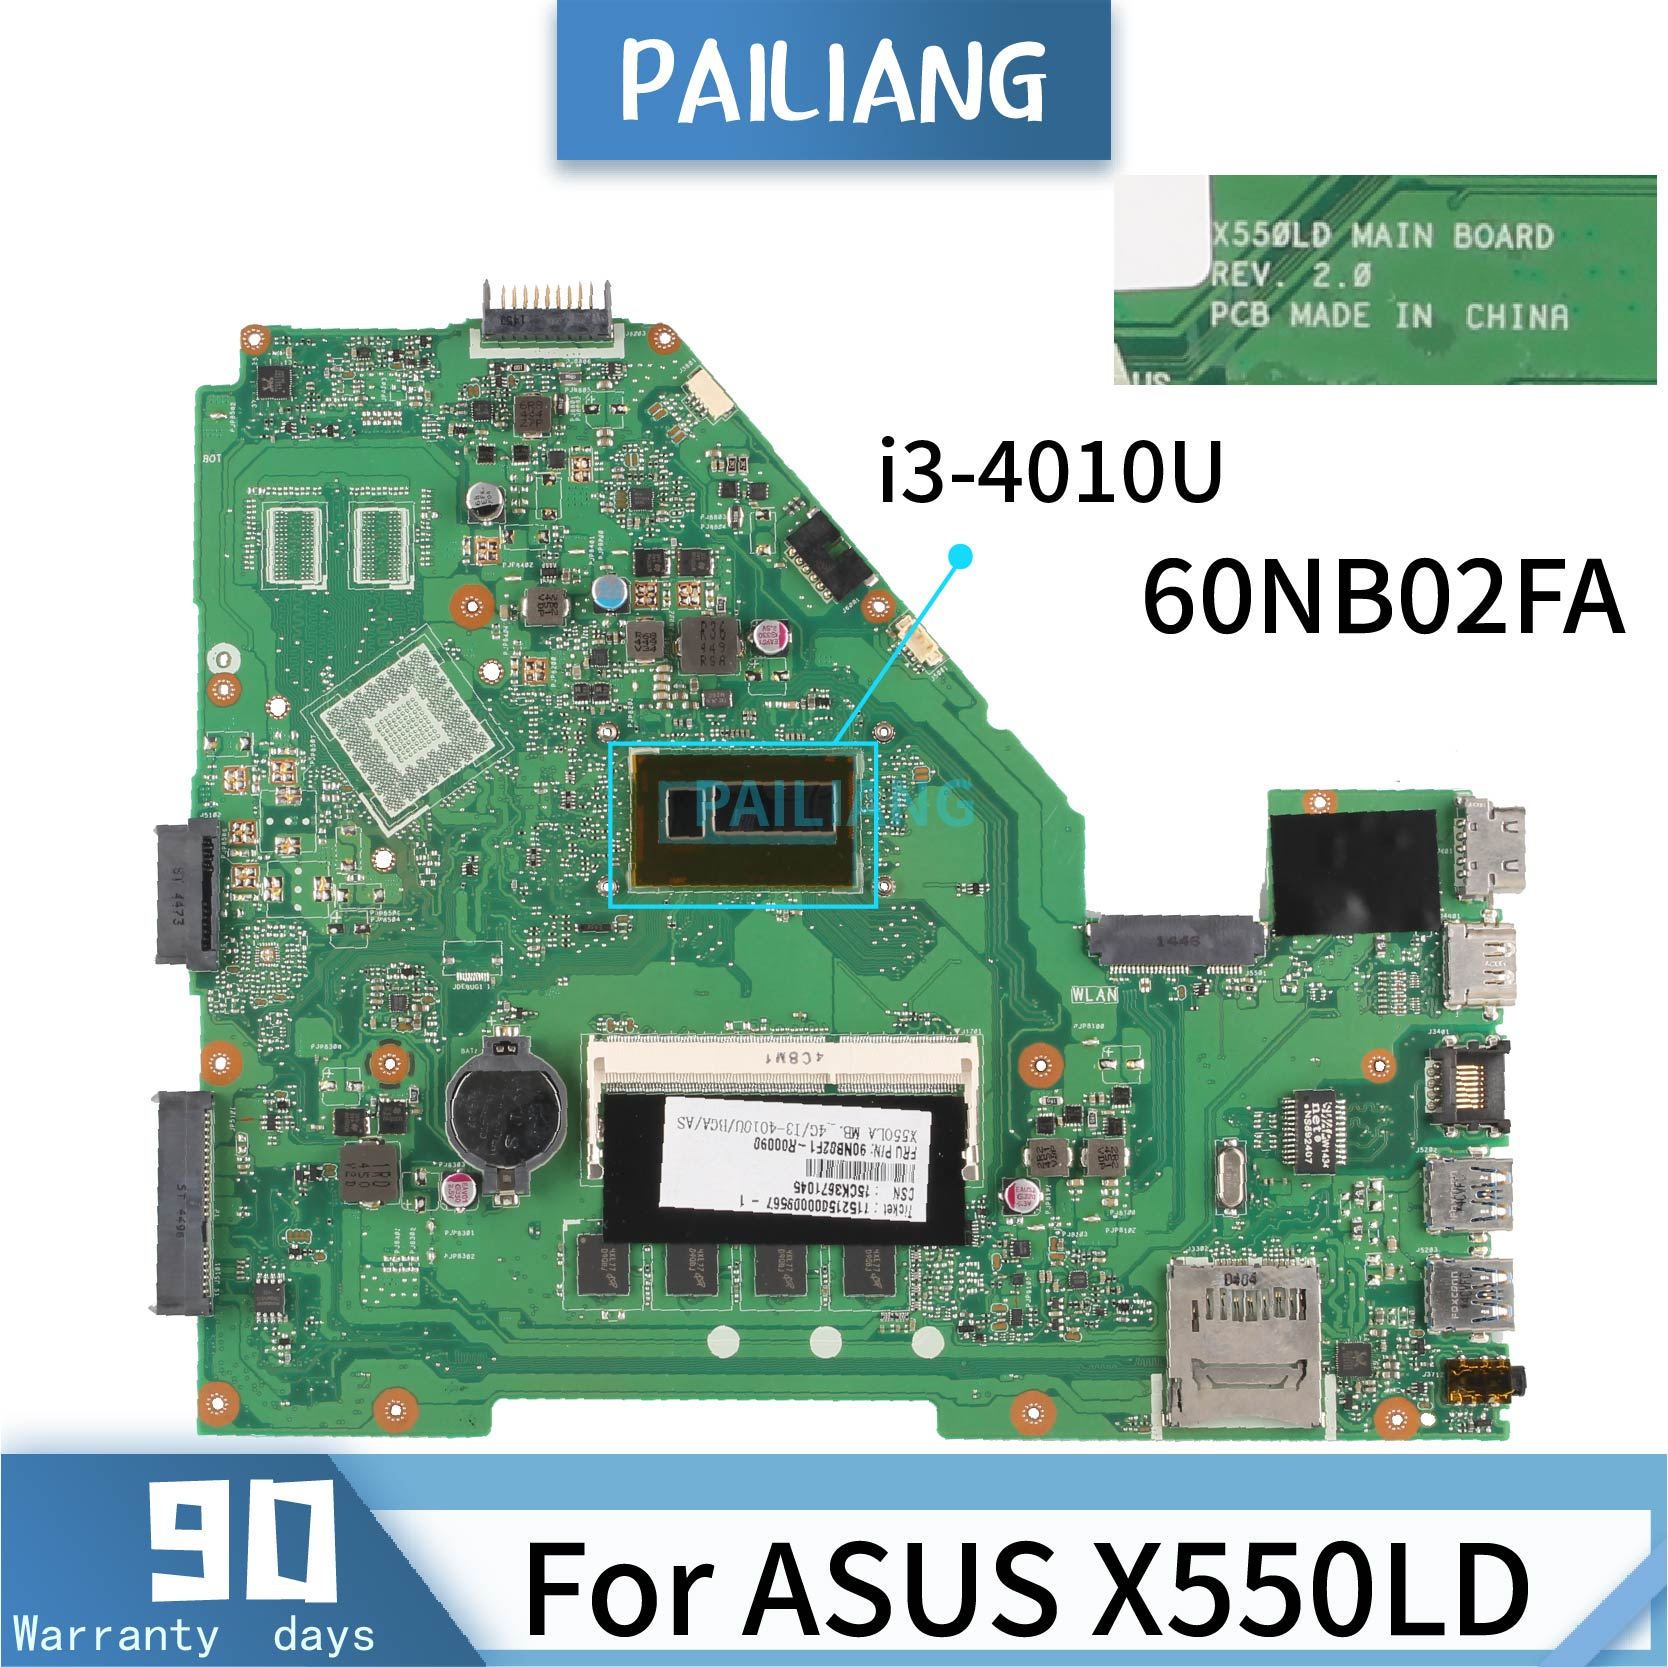 PAILIANG Laptop motherboard For ASUS X550LD REV:2.0 60NB02FA Mainboard <font><b>Core</b></font> SR16Q <font><b>i3</b></font>-<font><b>4010U</b></font> DDR3 image